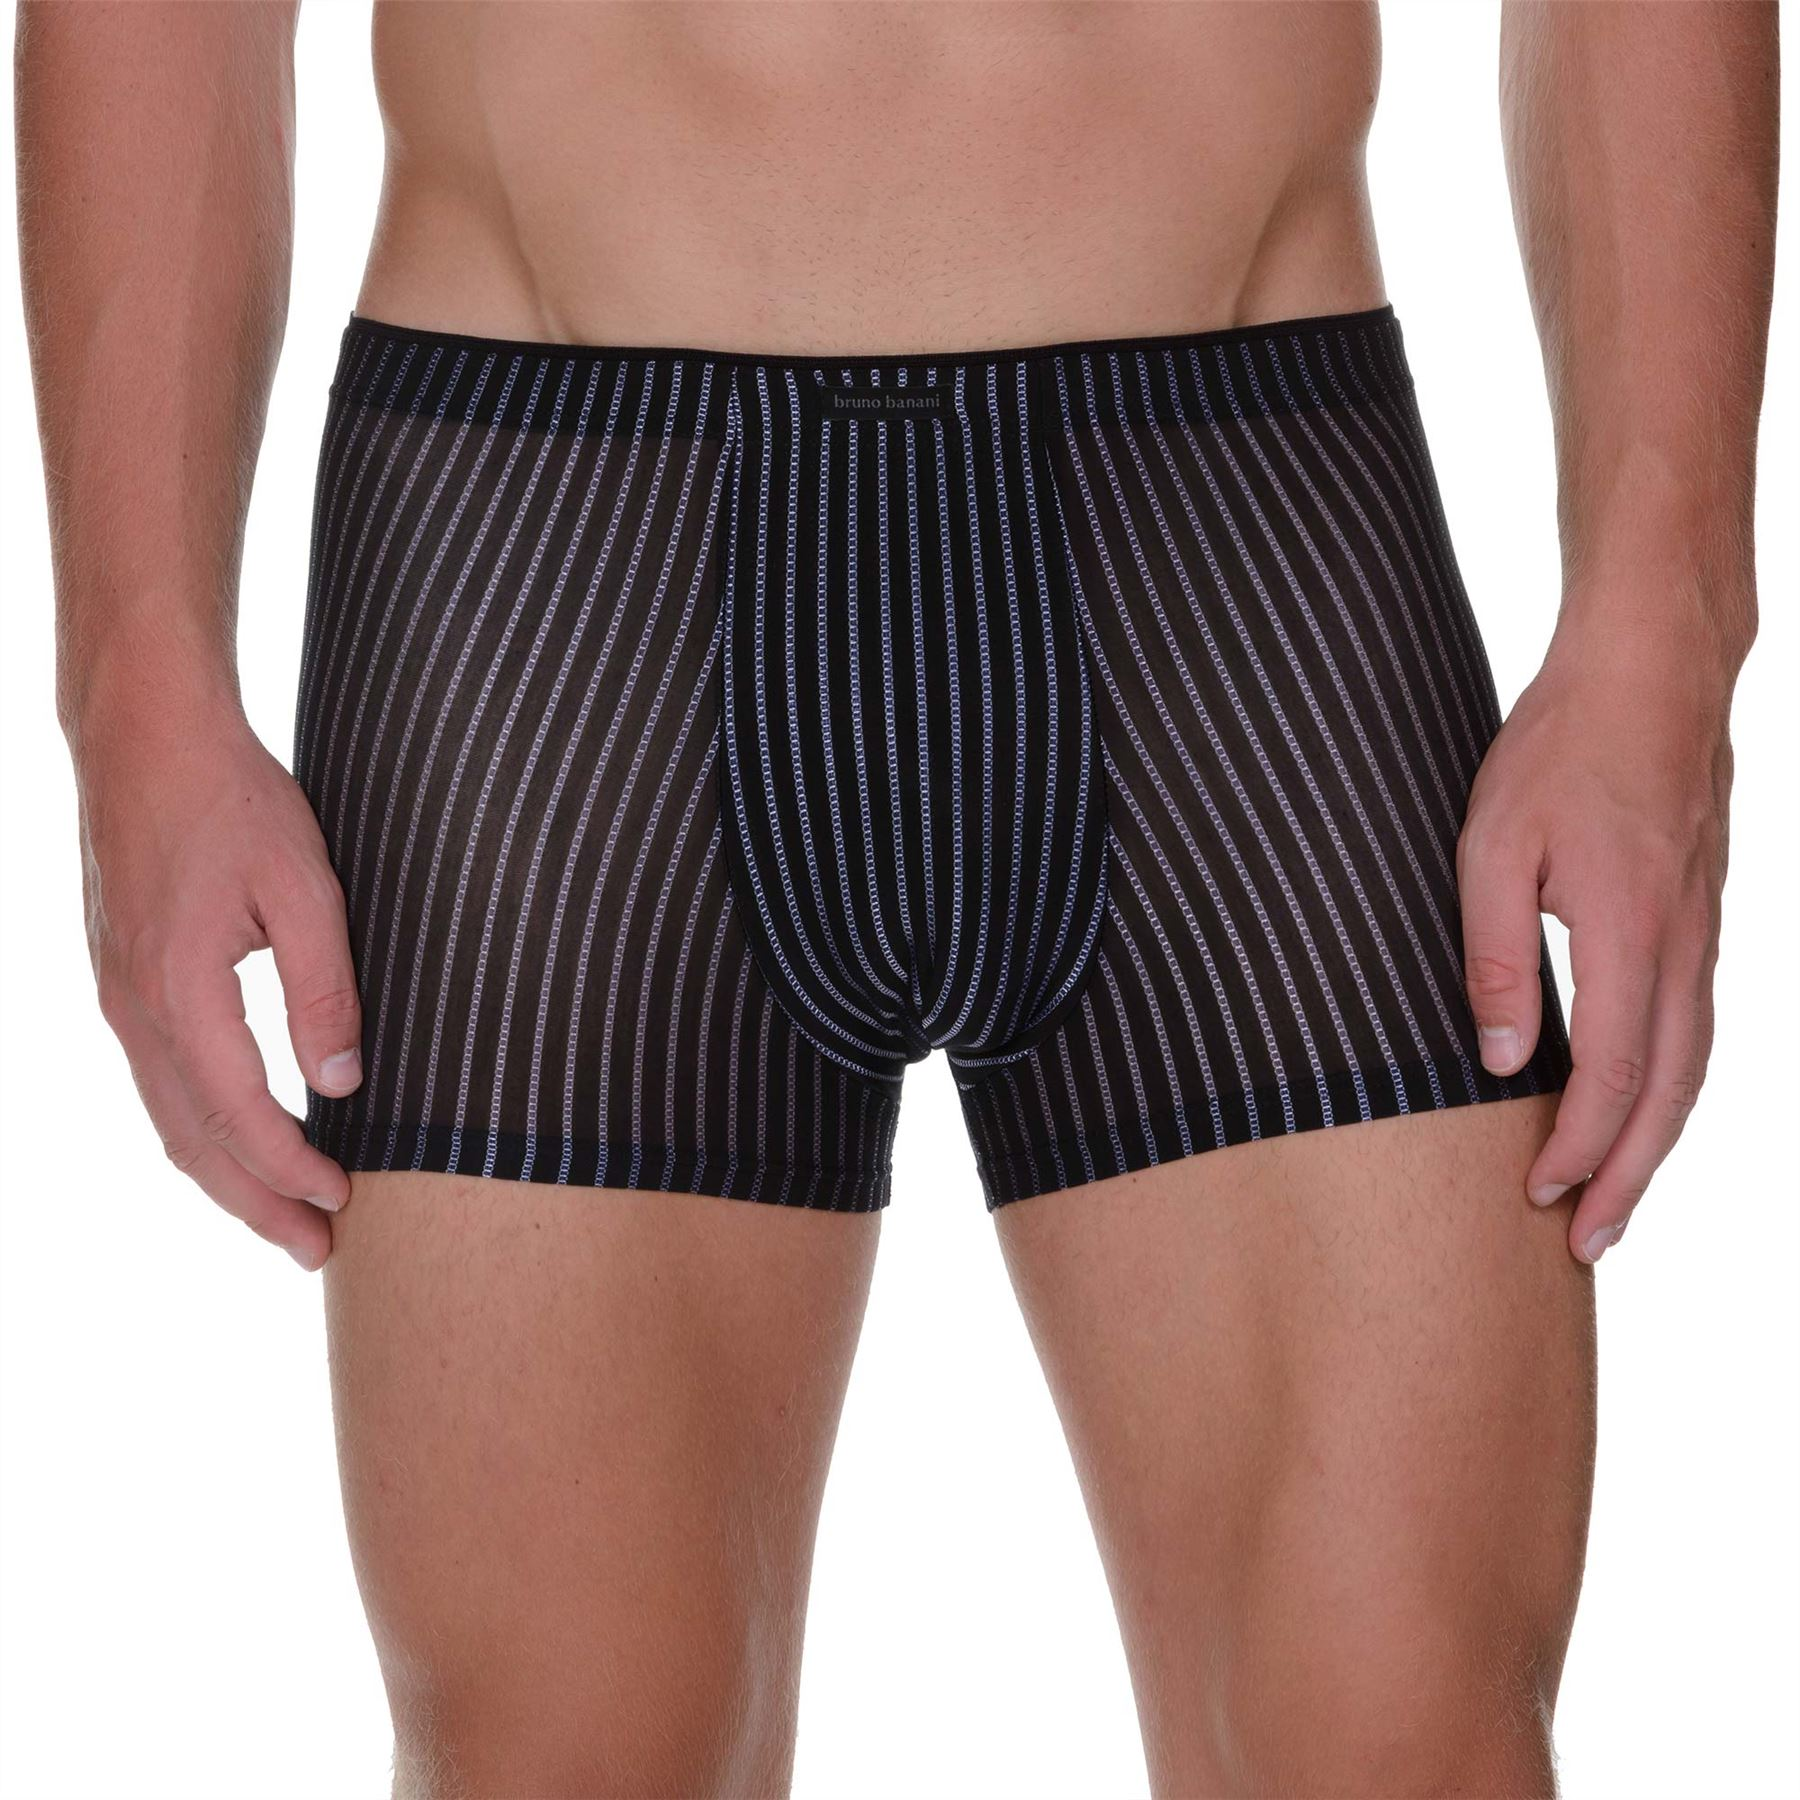 Mens Trunk Bruno Banani Discount Manchester Sale Original Outlet Lowest Price Cheap Latest Clearance Online Ebay A4Nse25